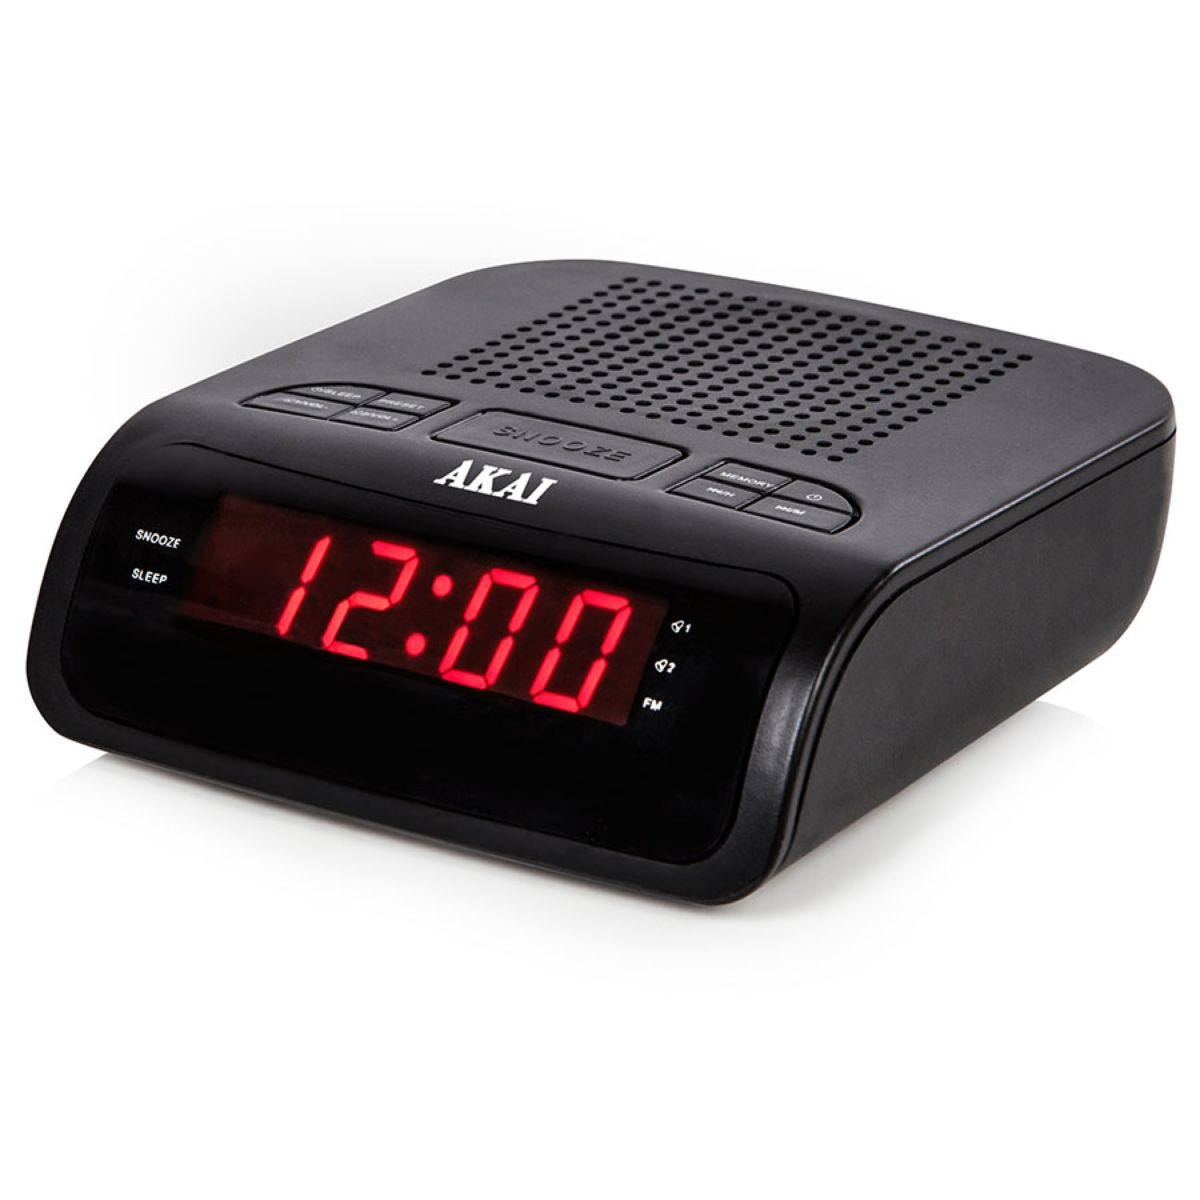 Akai PLL AM/FM Alarm Clock Radio – Black